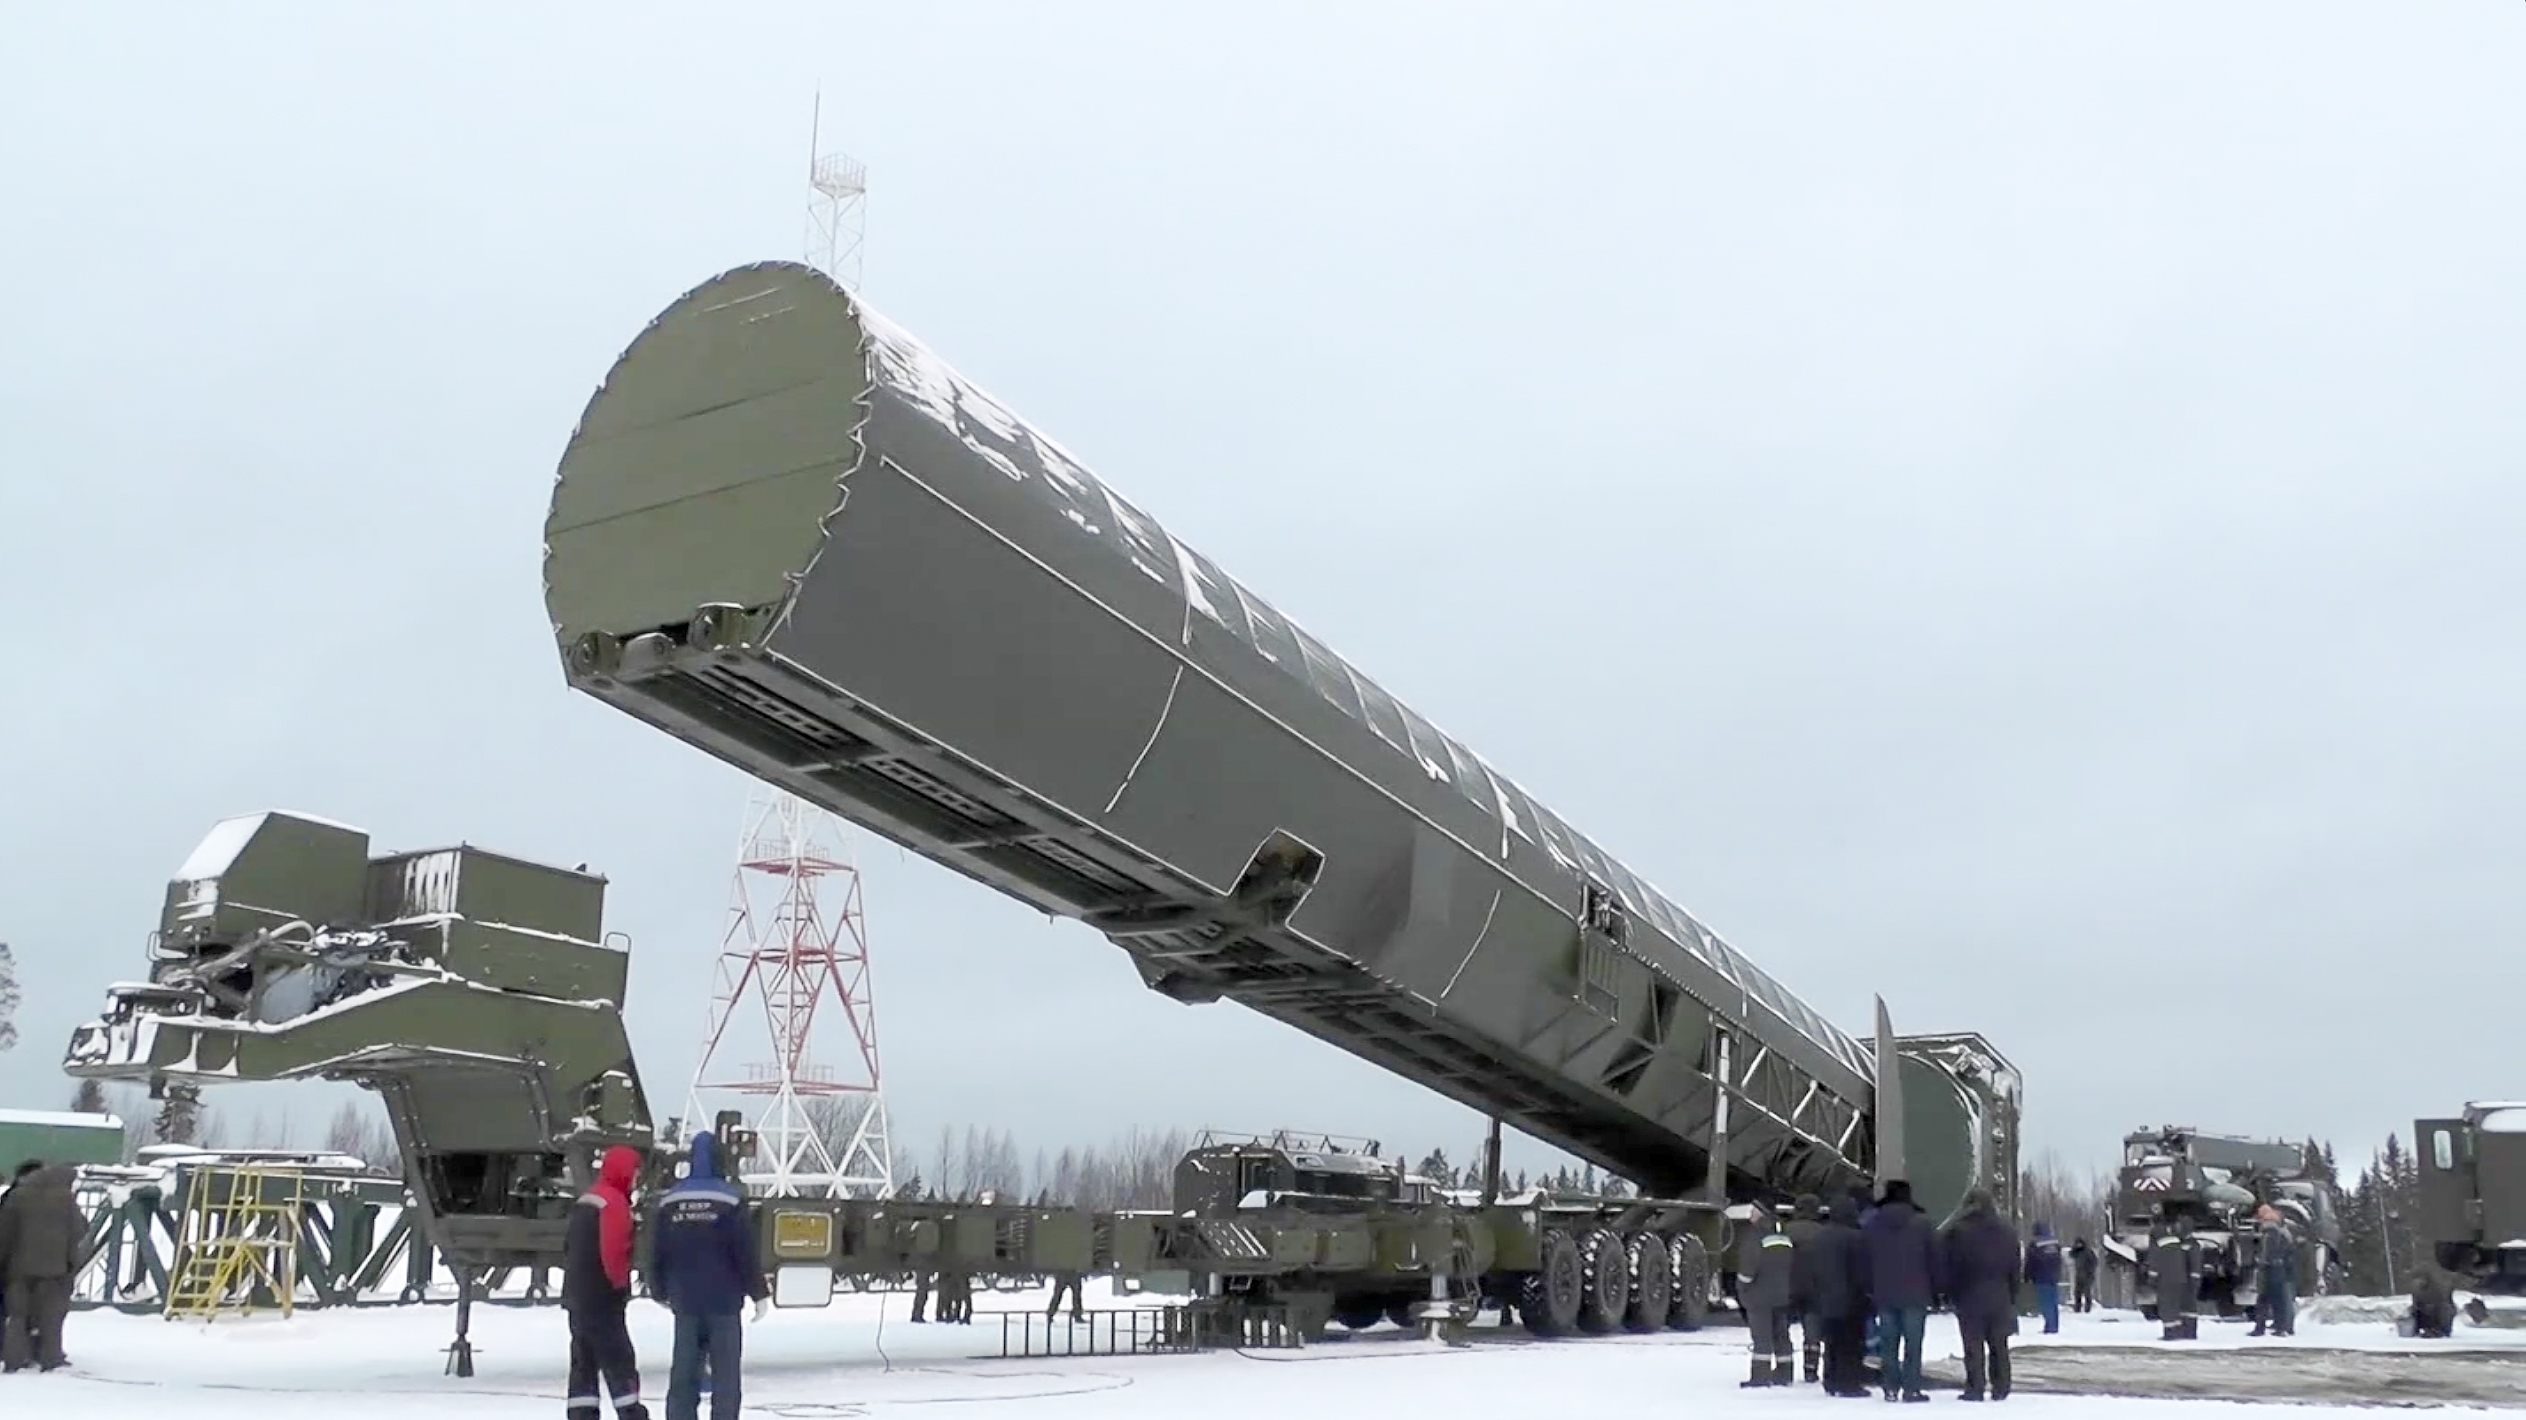 Russia's new Sarmat intercontinental missile is shown at an undisclosed location in Russia. (RU-RTR Russian Television via AP)